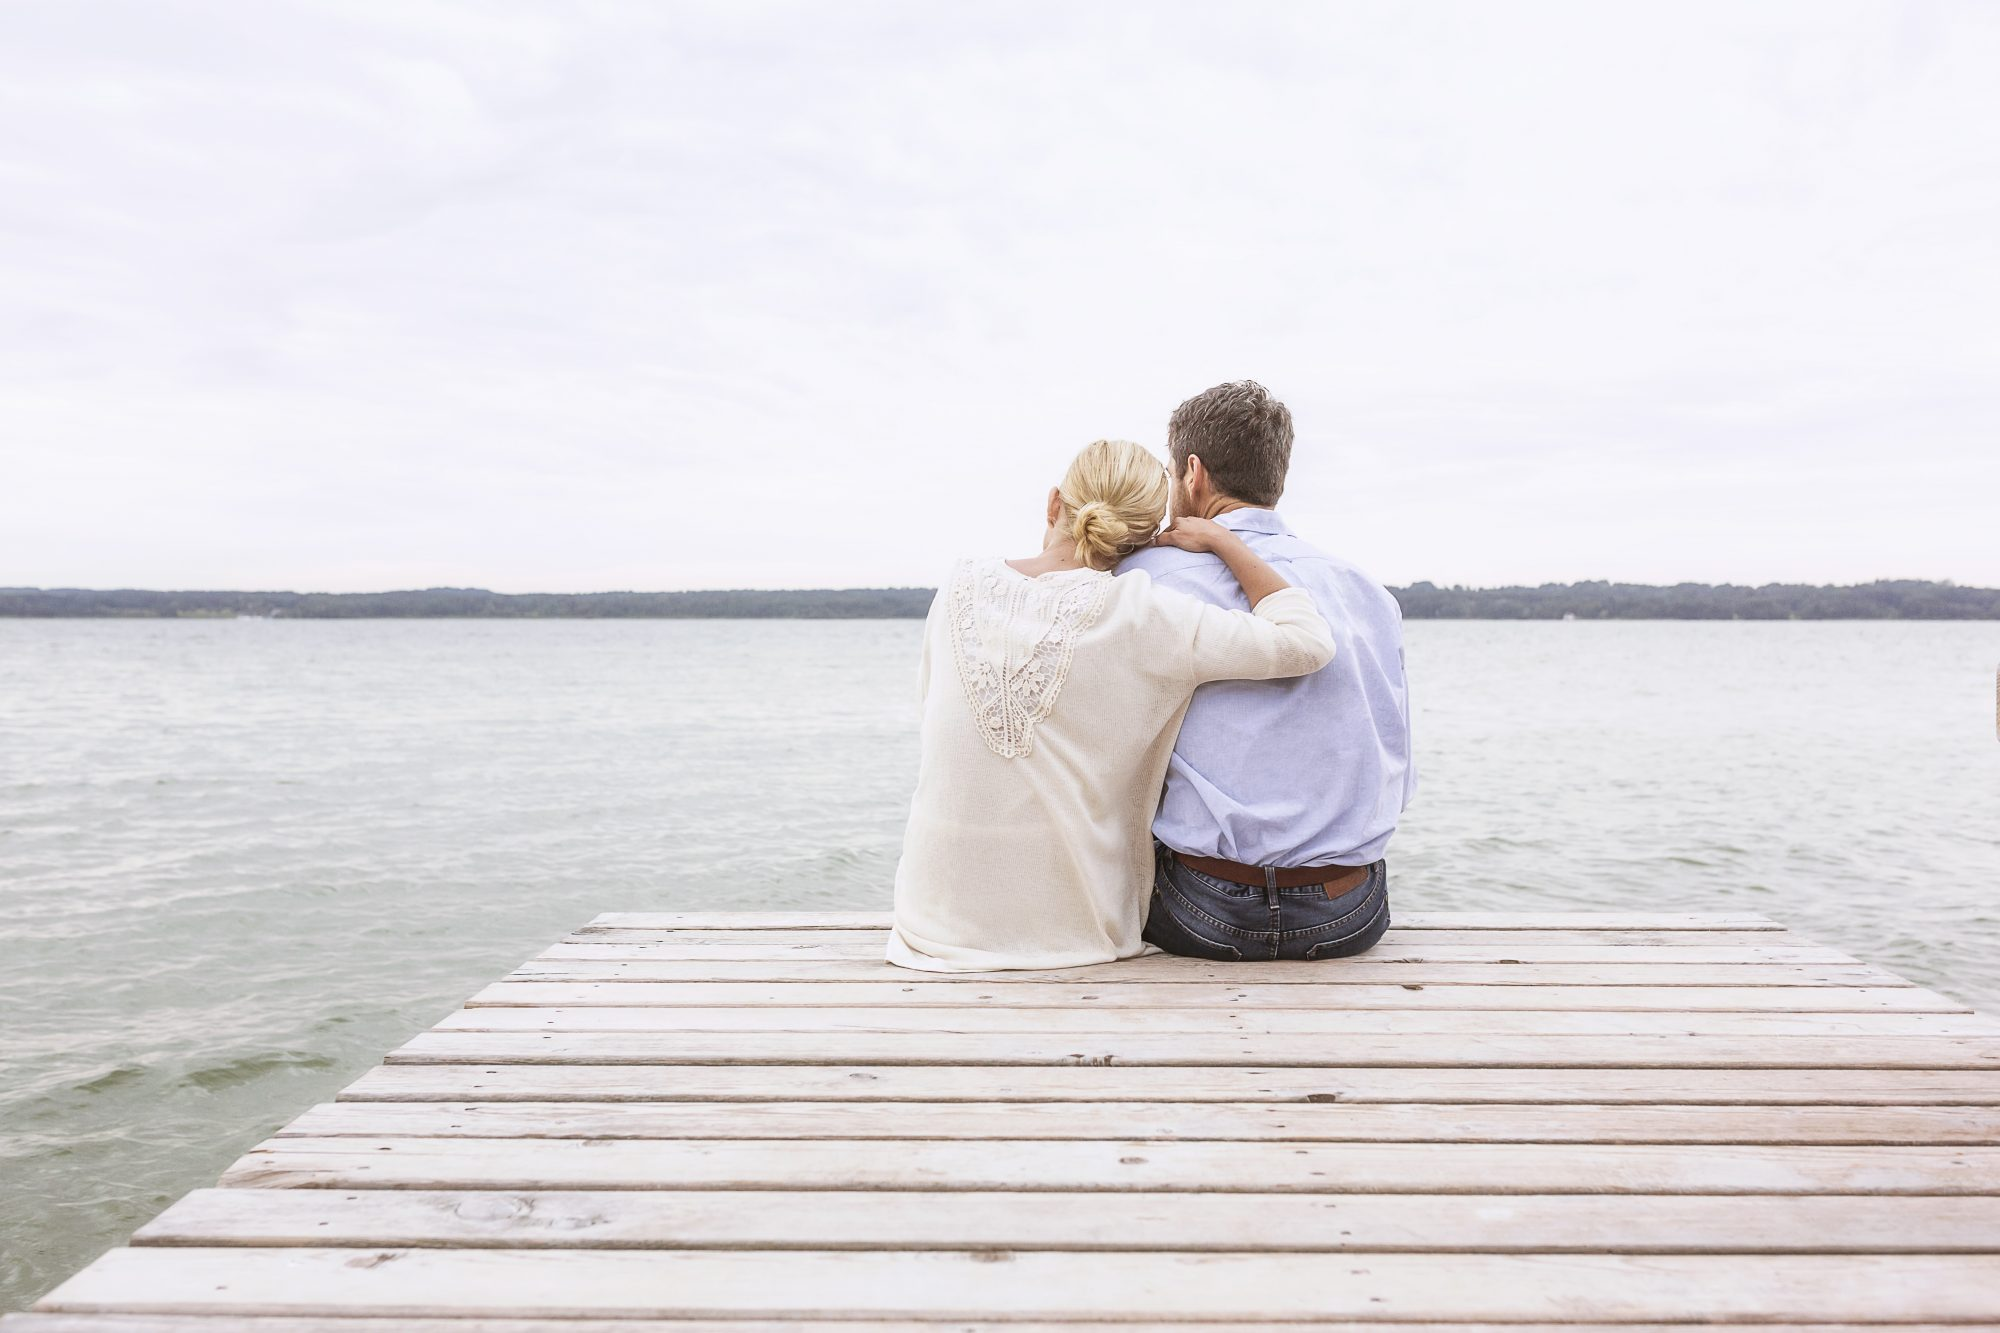 Couple Sitting on Pier Looking at Sea